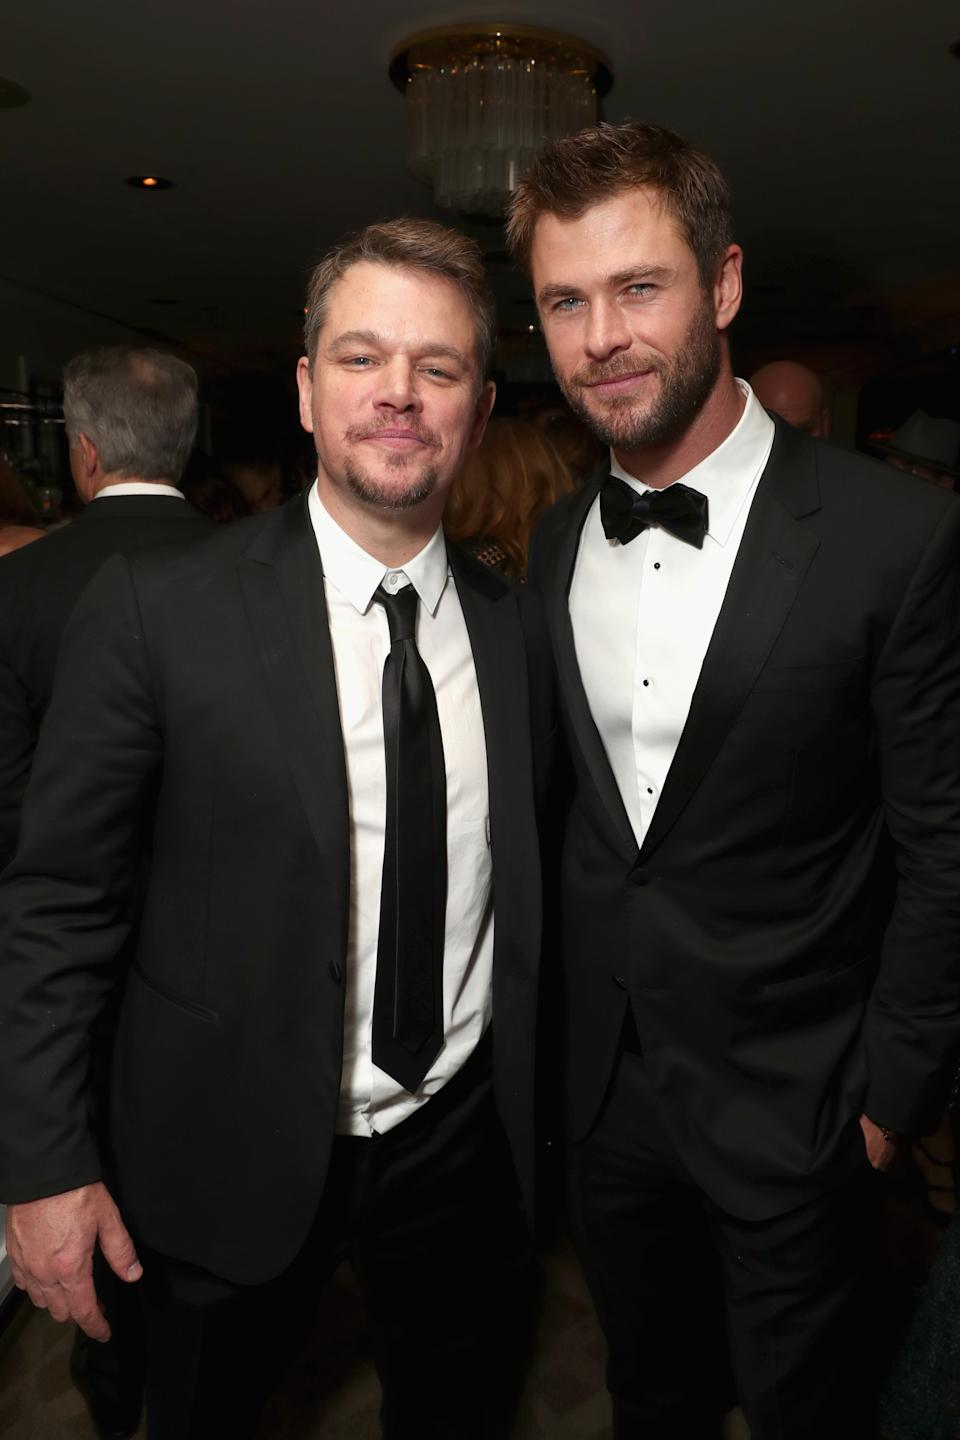 Matt is a known fan of Australia and is good friends with Thor actor Chris Hemsworth. Photo: Getty